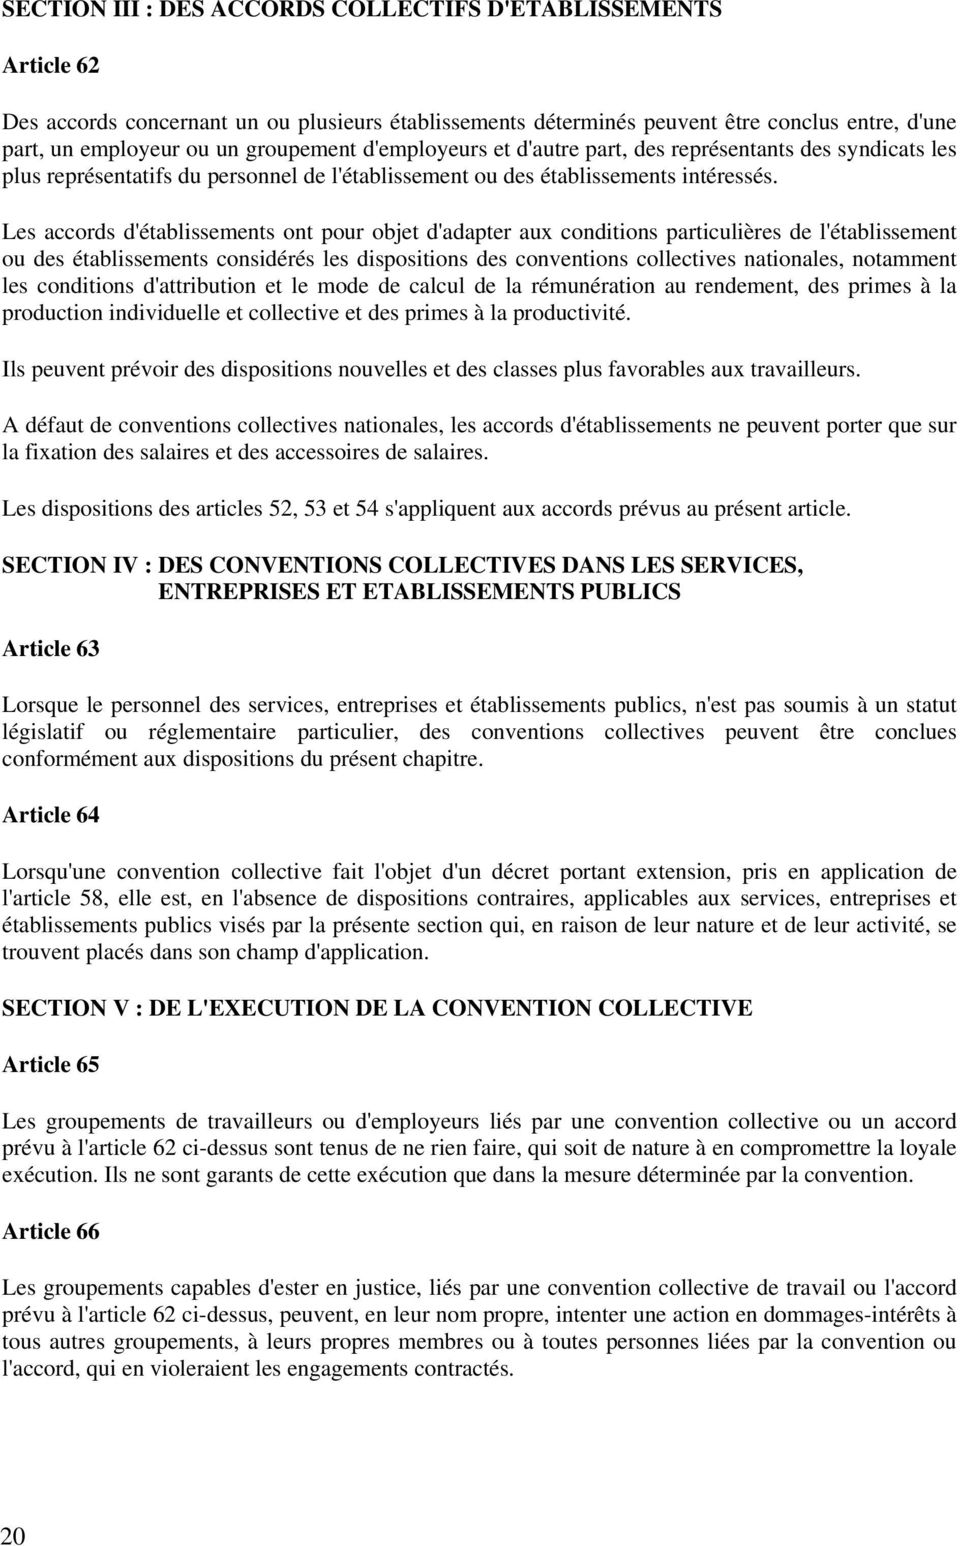 Les accords d'établissements ont pour objet d'adapter aux conditions particulières de l'établissement ou des établissements considérés les dispositions des conventions collectives nationales,